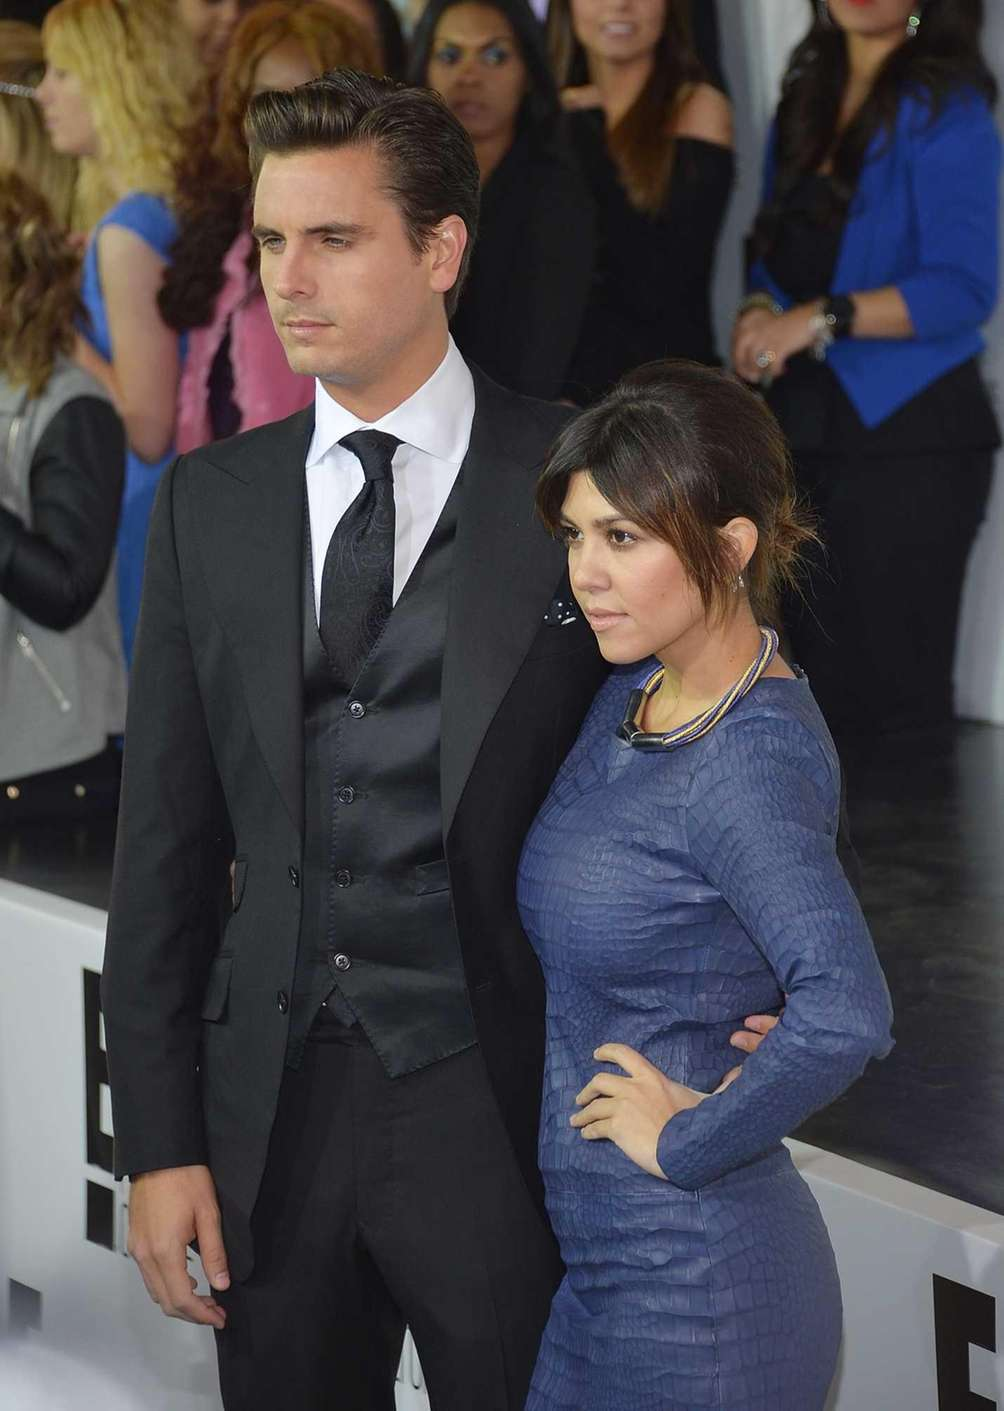 Scott Disick and Kourtney Kardashian attend the E!